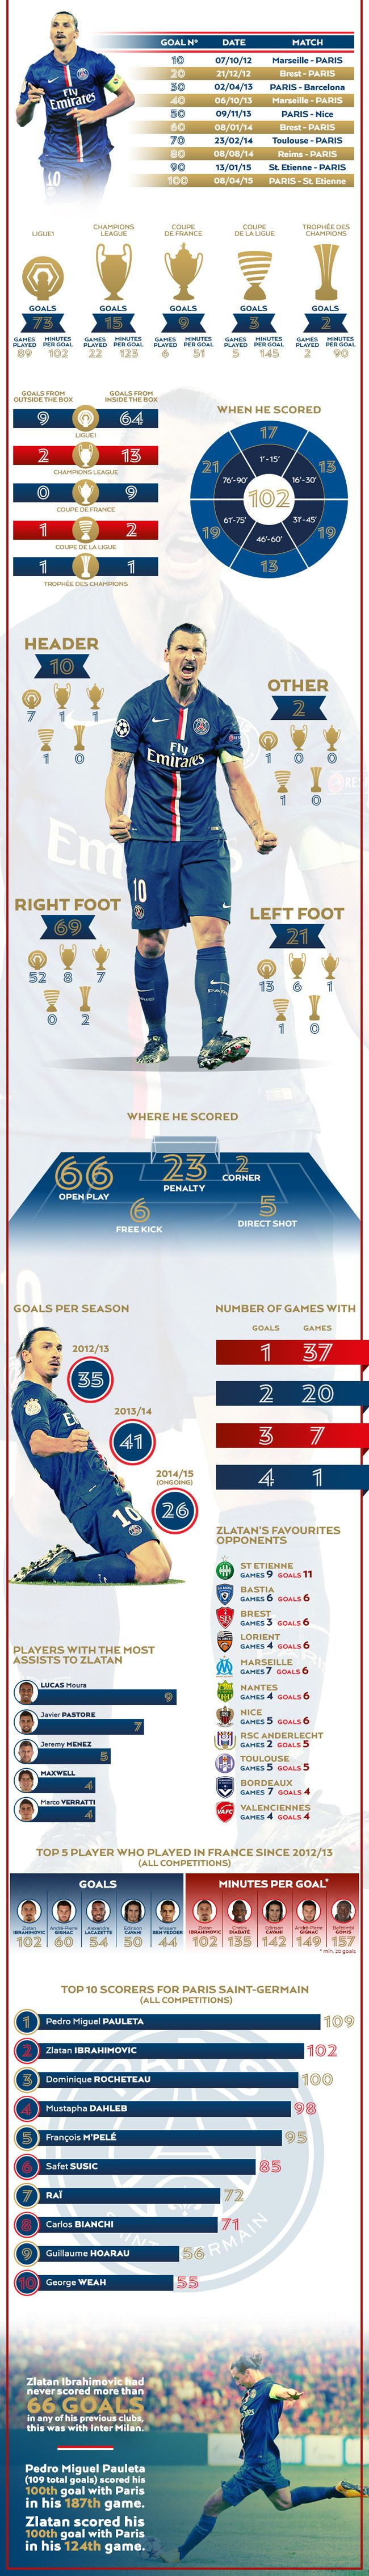 Infography of his 102 goals at the club - Zlatan Ibrahimovic - PSG.fr